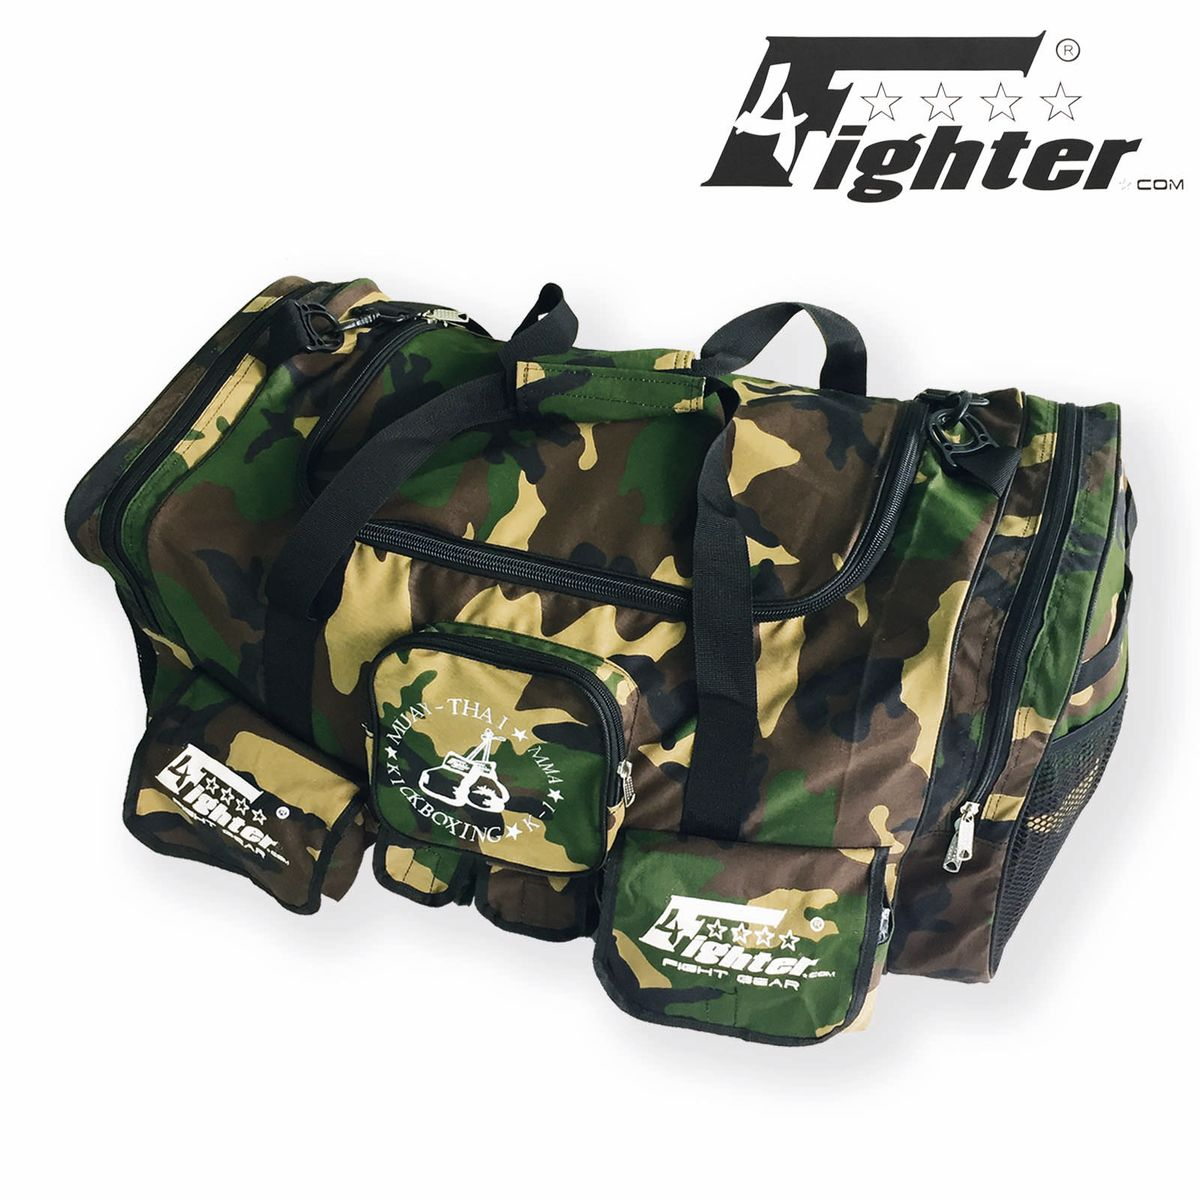 4Fighter Gymbag PRO Oversized Gym Bag With Many Small Pockets Camo Duffel Bild